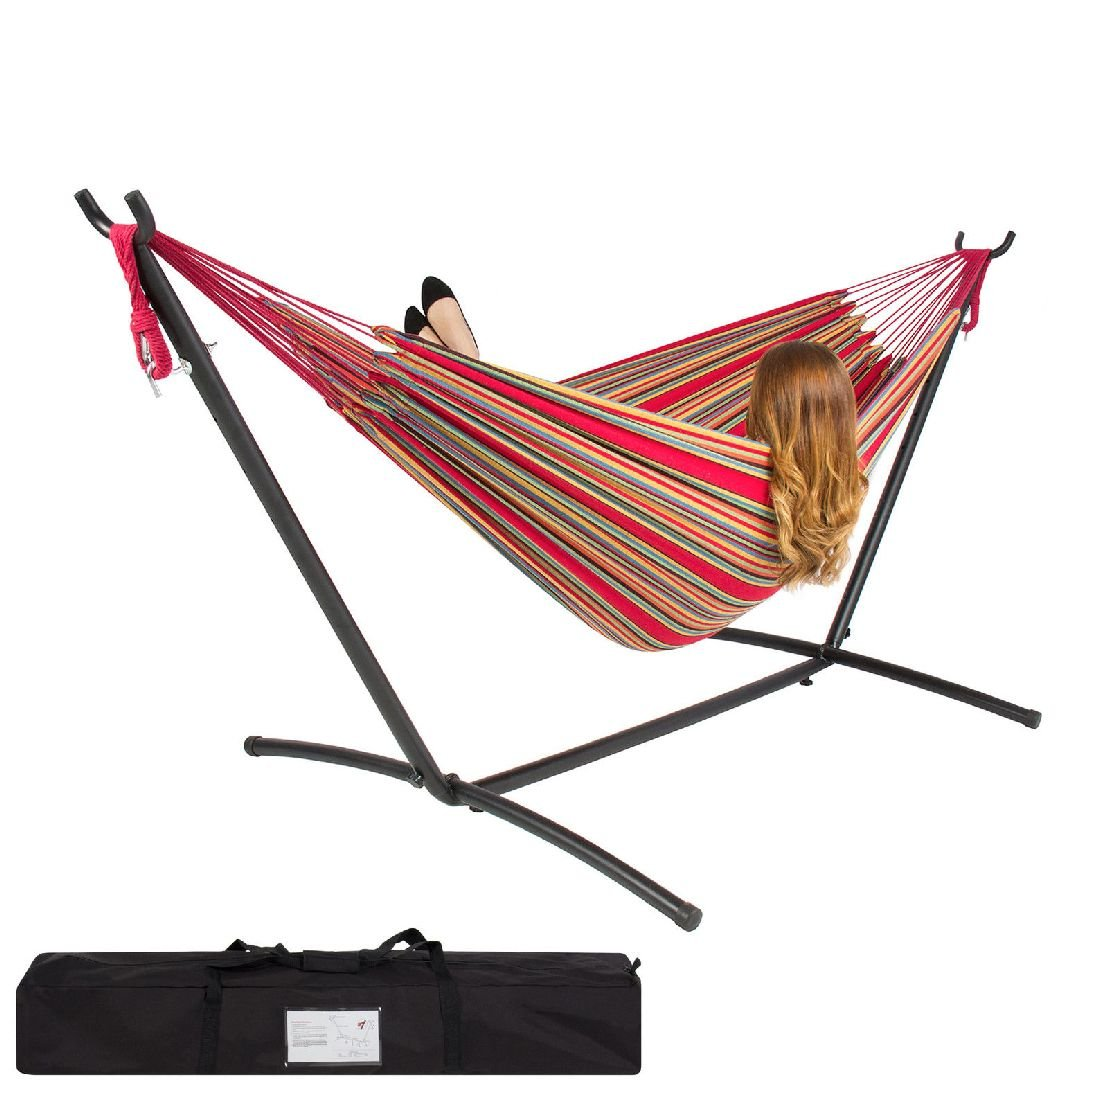 Double Hammock With Space Saving Steel Stand Includes Portable Carrying Case Red